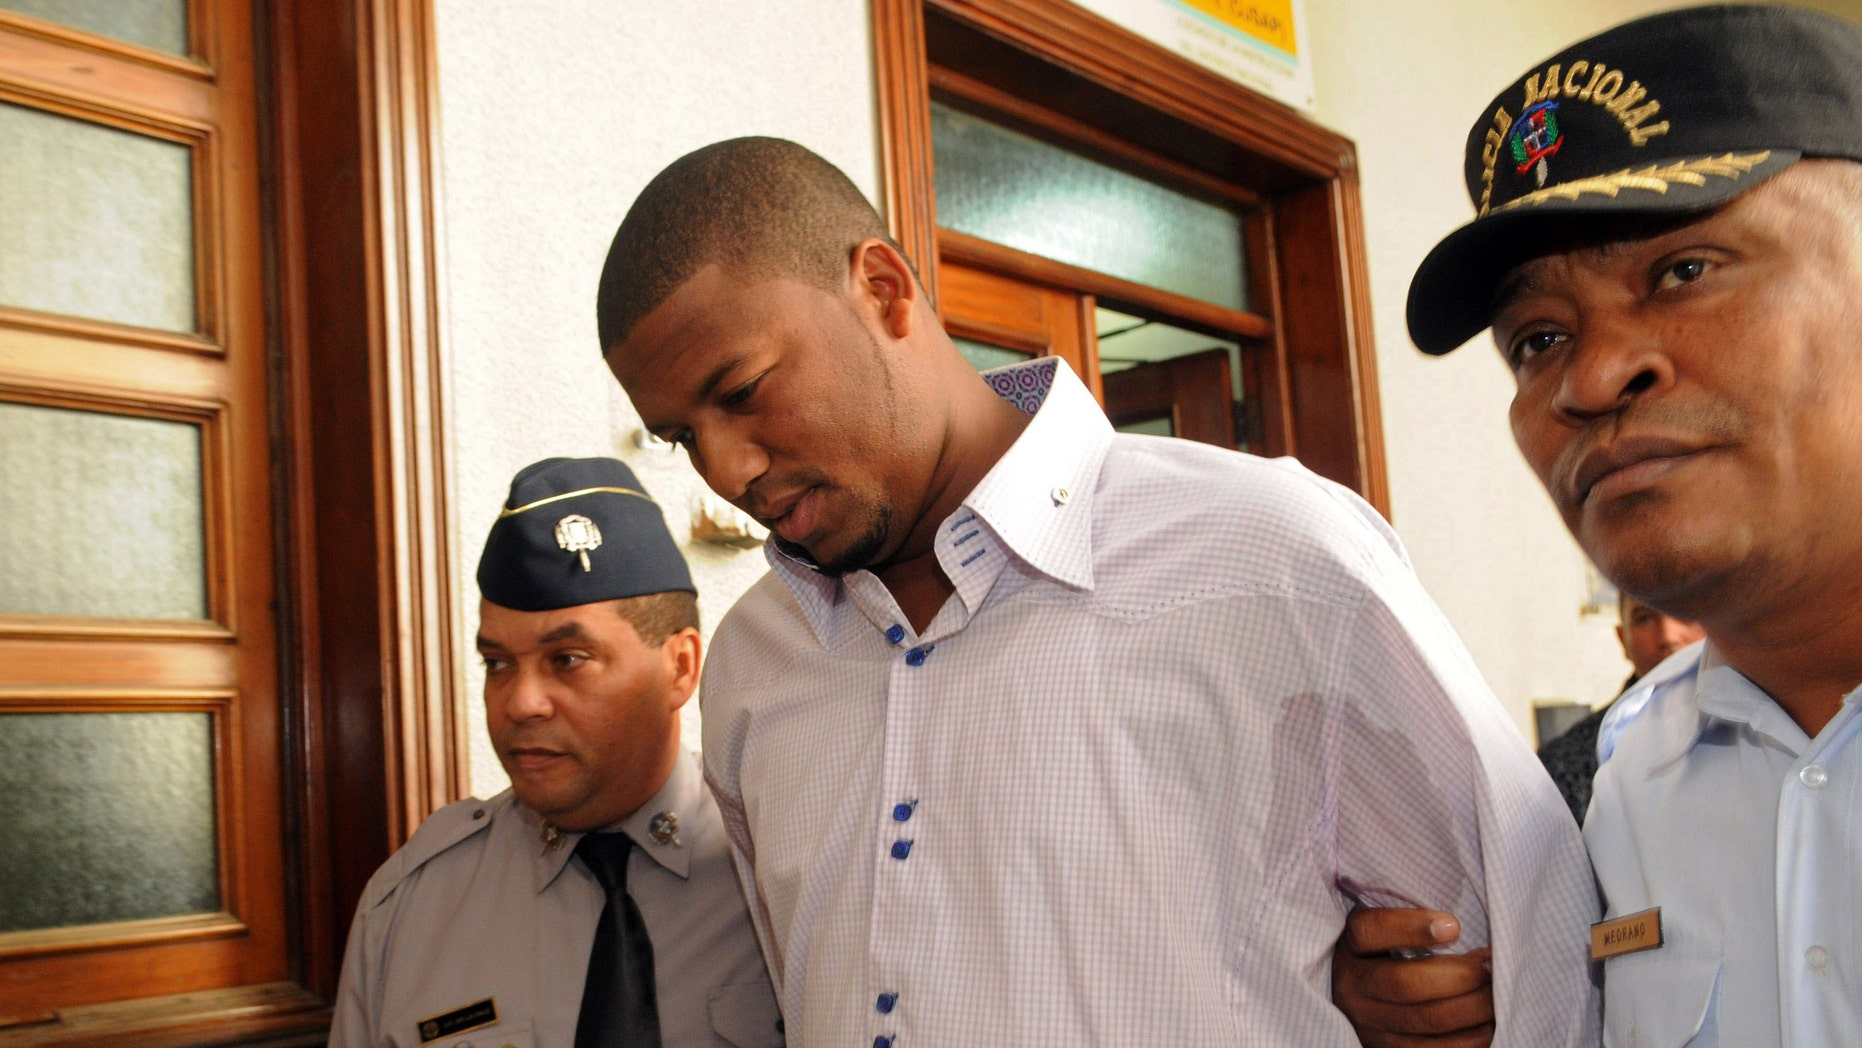 Cleveland Indians pitcher Fausto Carmona, whose real name is Roberto Hernandez Heredia, center, is escorted by police out of court in Santo Domingo, Dominican Republic, Friday Jan. 20, 2012. Hernandez made a tearful apology as he was released on bail following his arrest on Thursday outside the U.S. Consulate in the Dominican capital as he went to get his visa renewed, for allegedly using a false identity to play baseball in the U.S. He is the second Dominican player arrested in recent weeks for using a false identity. (AP Photo/Manuel Diaz)